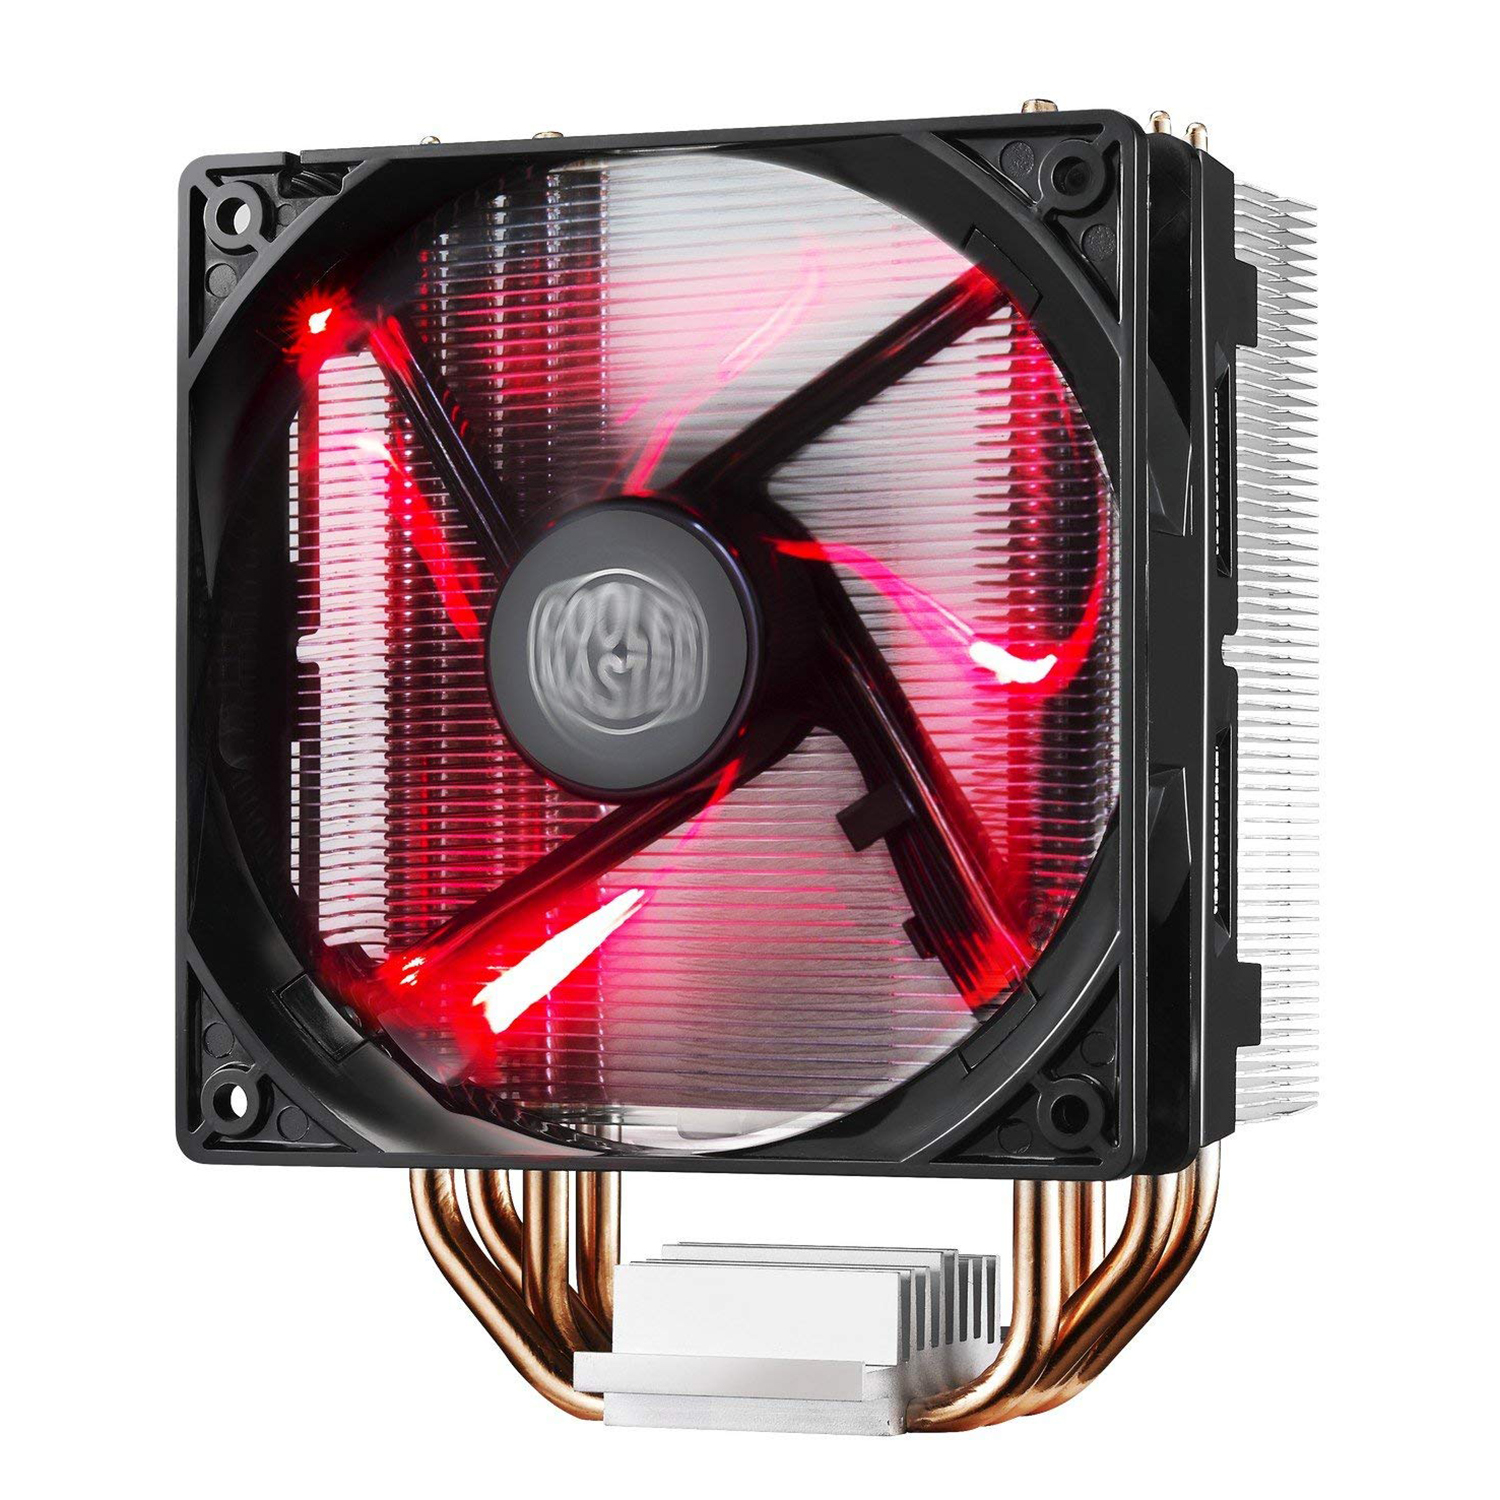 COOLER MASTER DC12V T400i LED CPU Cooler with PWM Fan, Four Direct Contact Heat Pipes, Unique Blade Design and Red LEDs